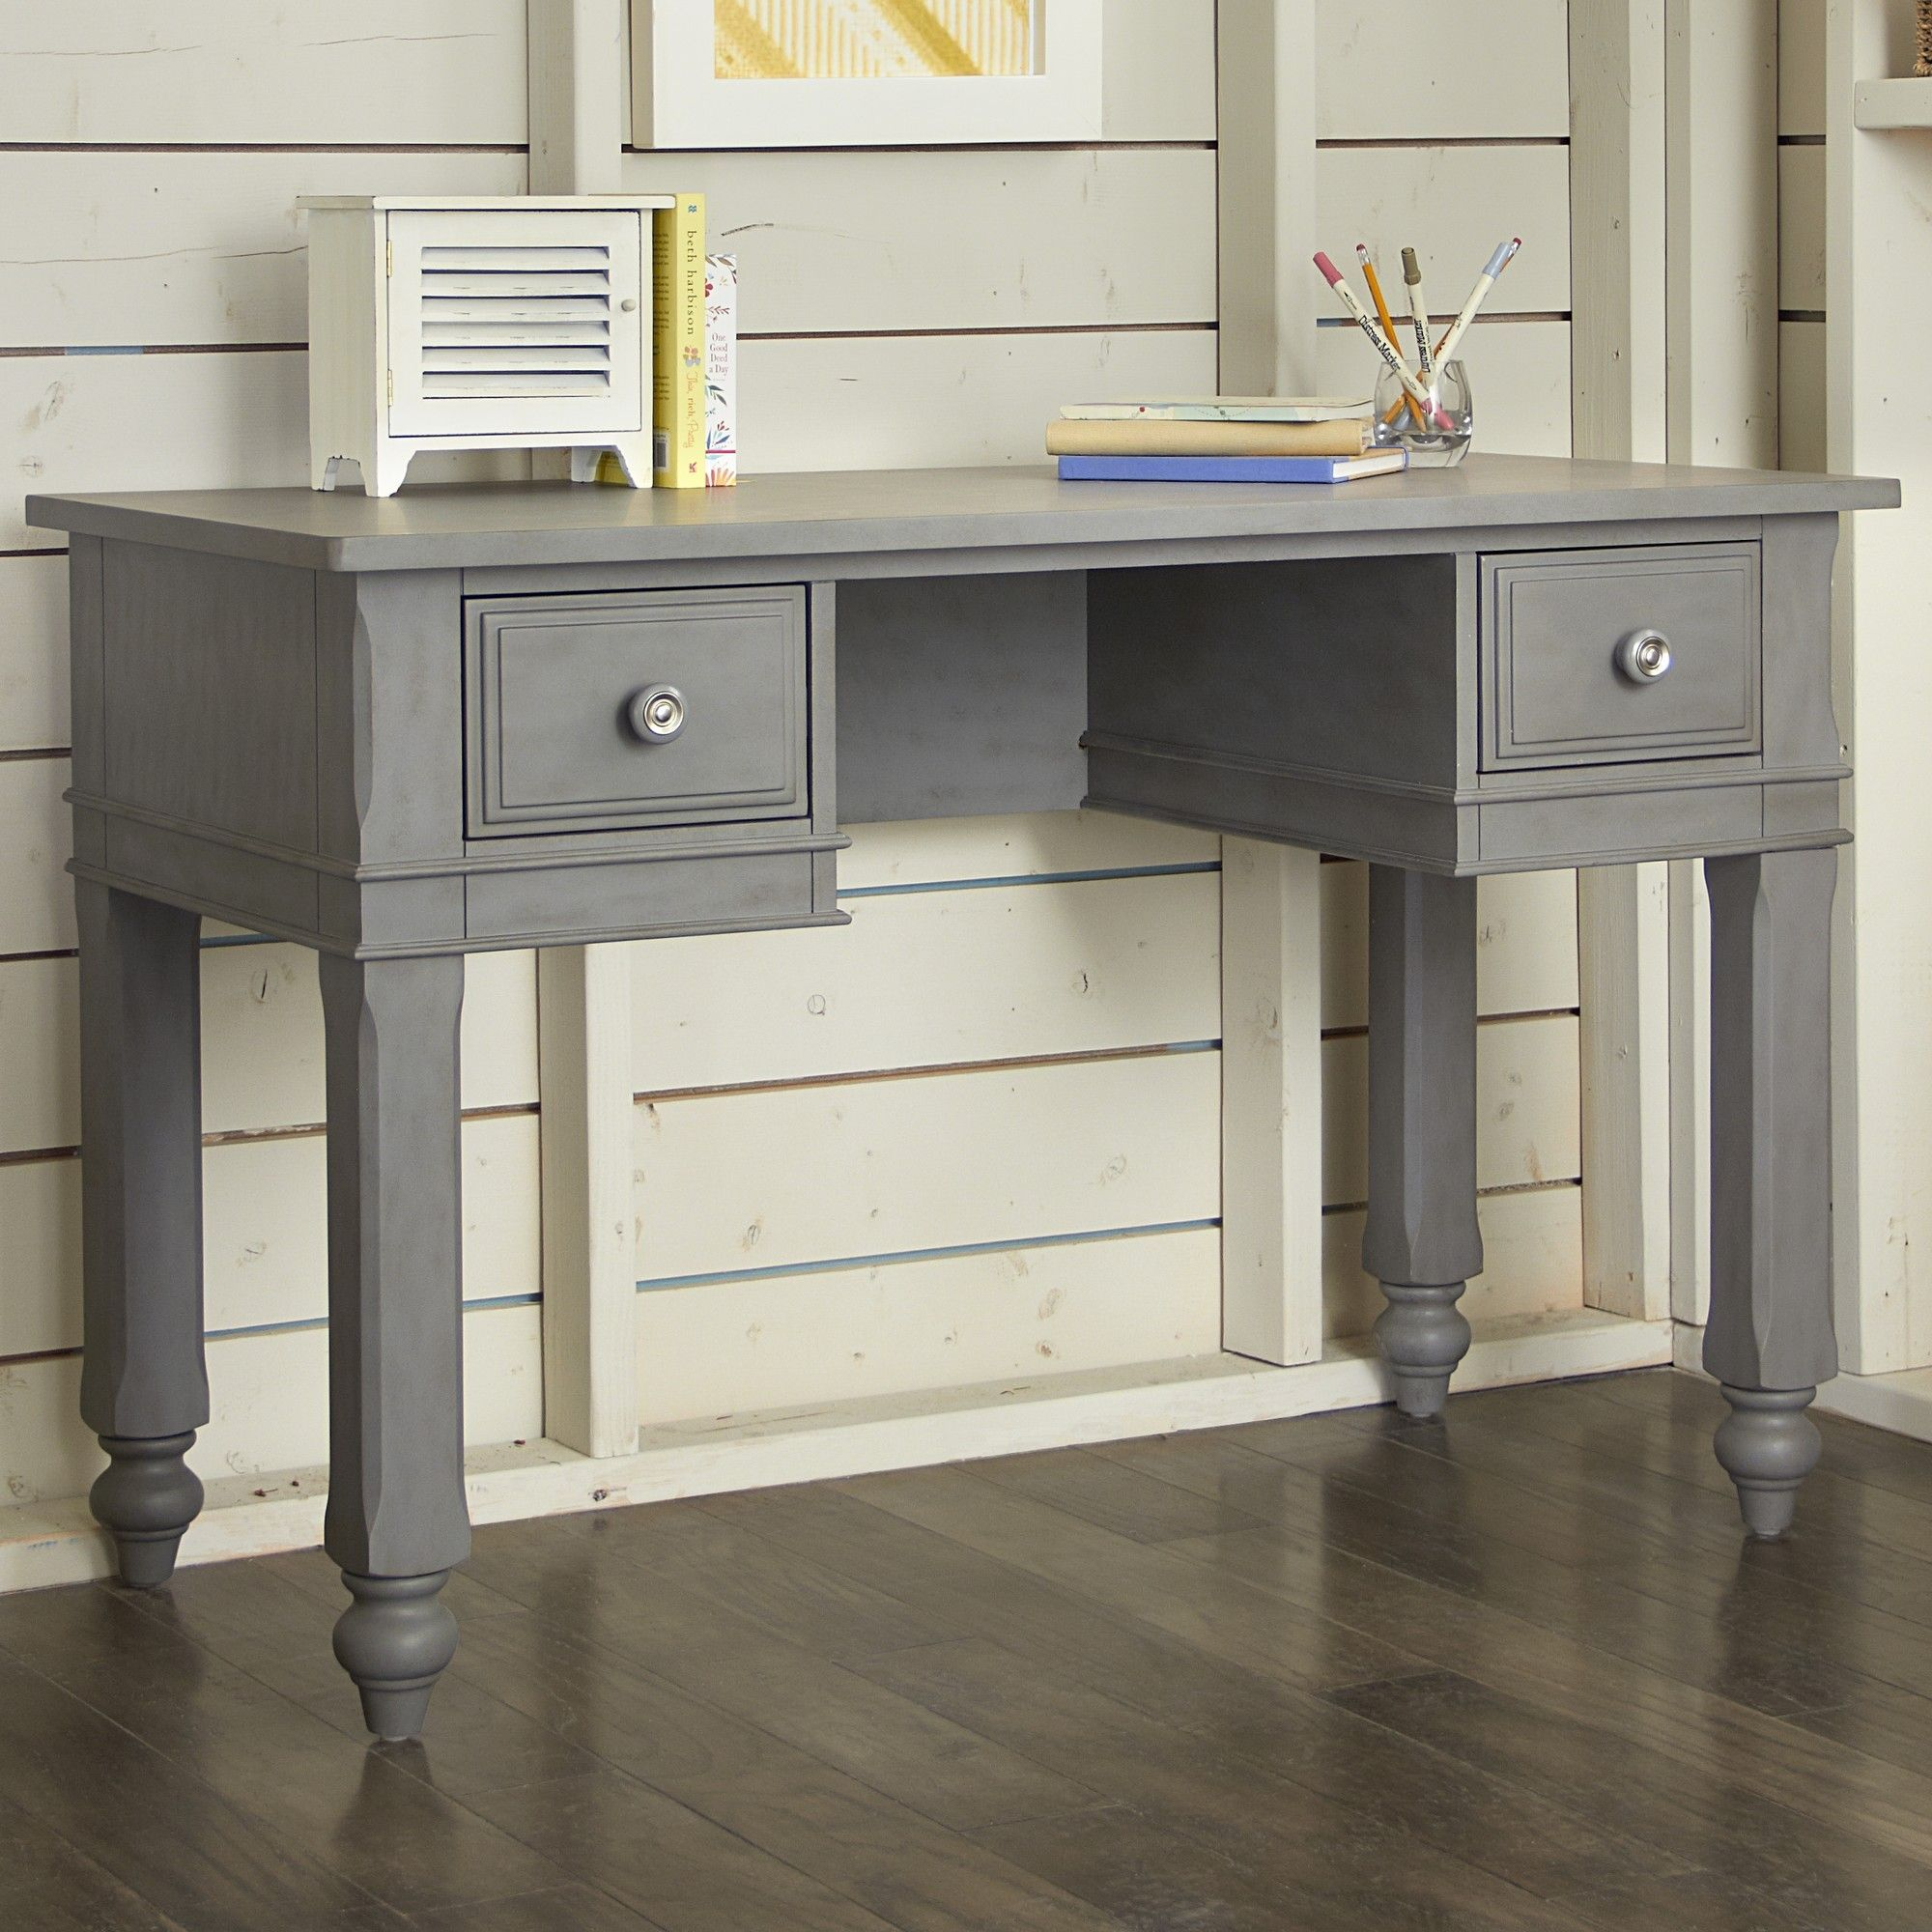 Lake house writing desk products pinterest writing desk and